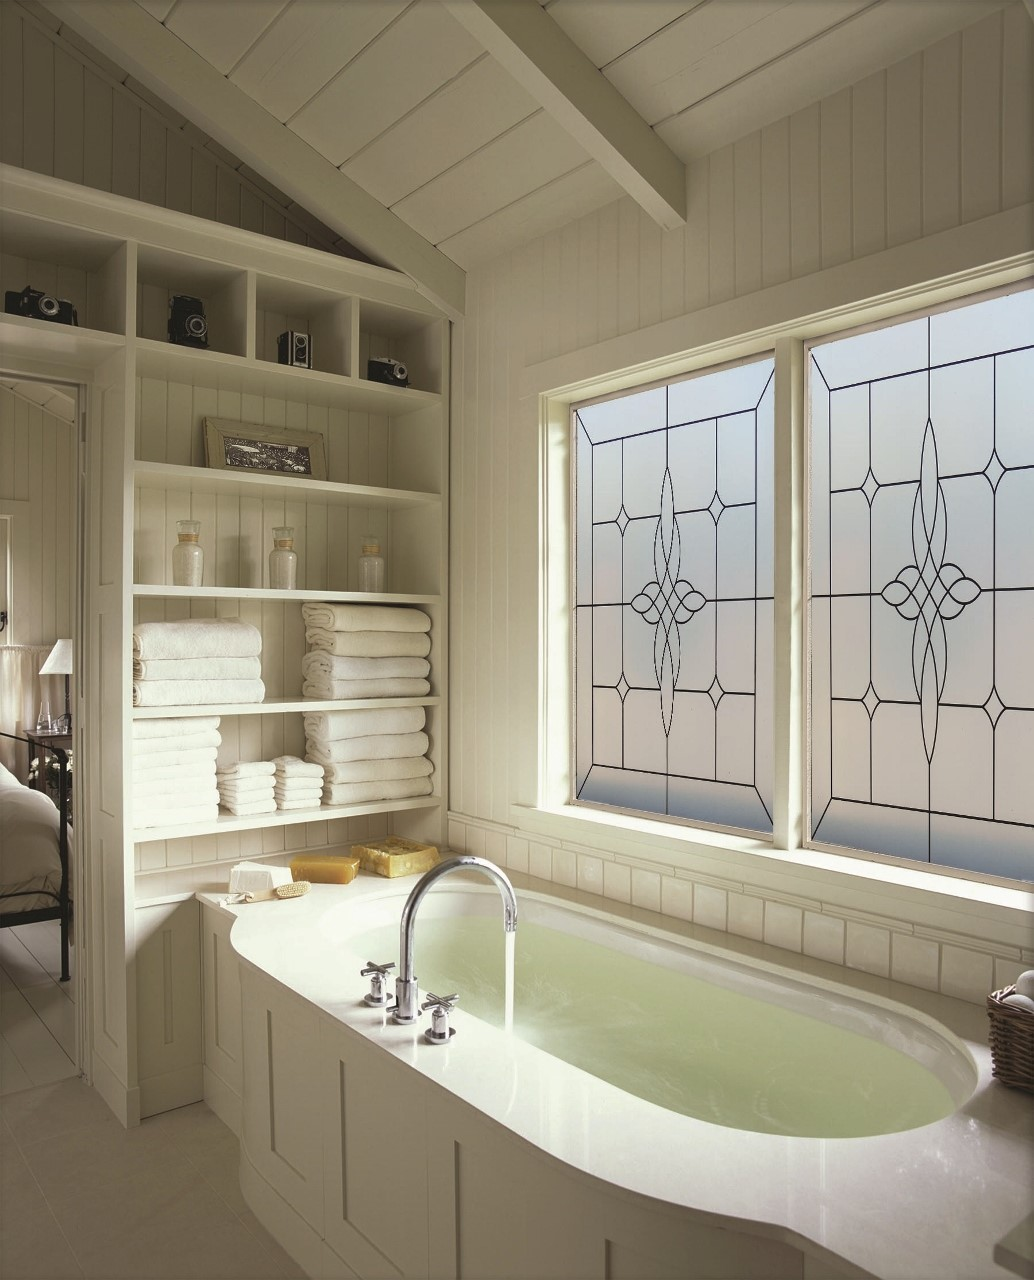 Hy lite offers 40 price cut on storm resistant windows for Glass block alternatives